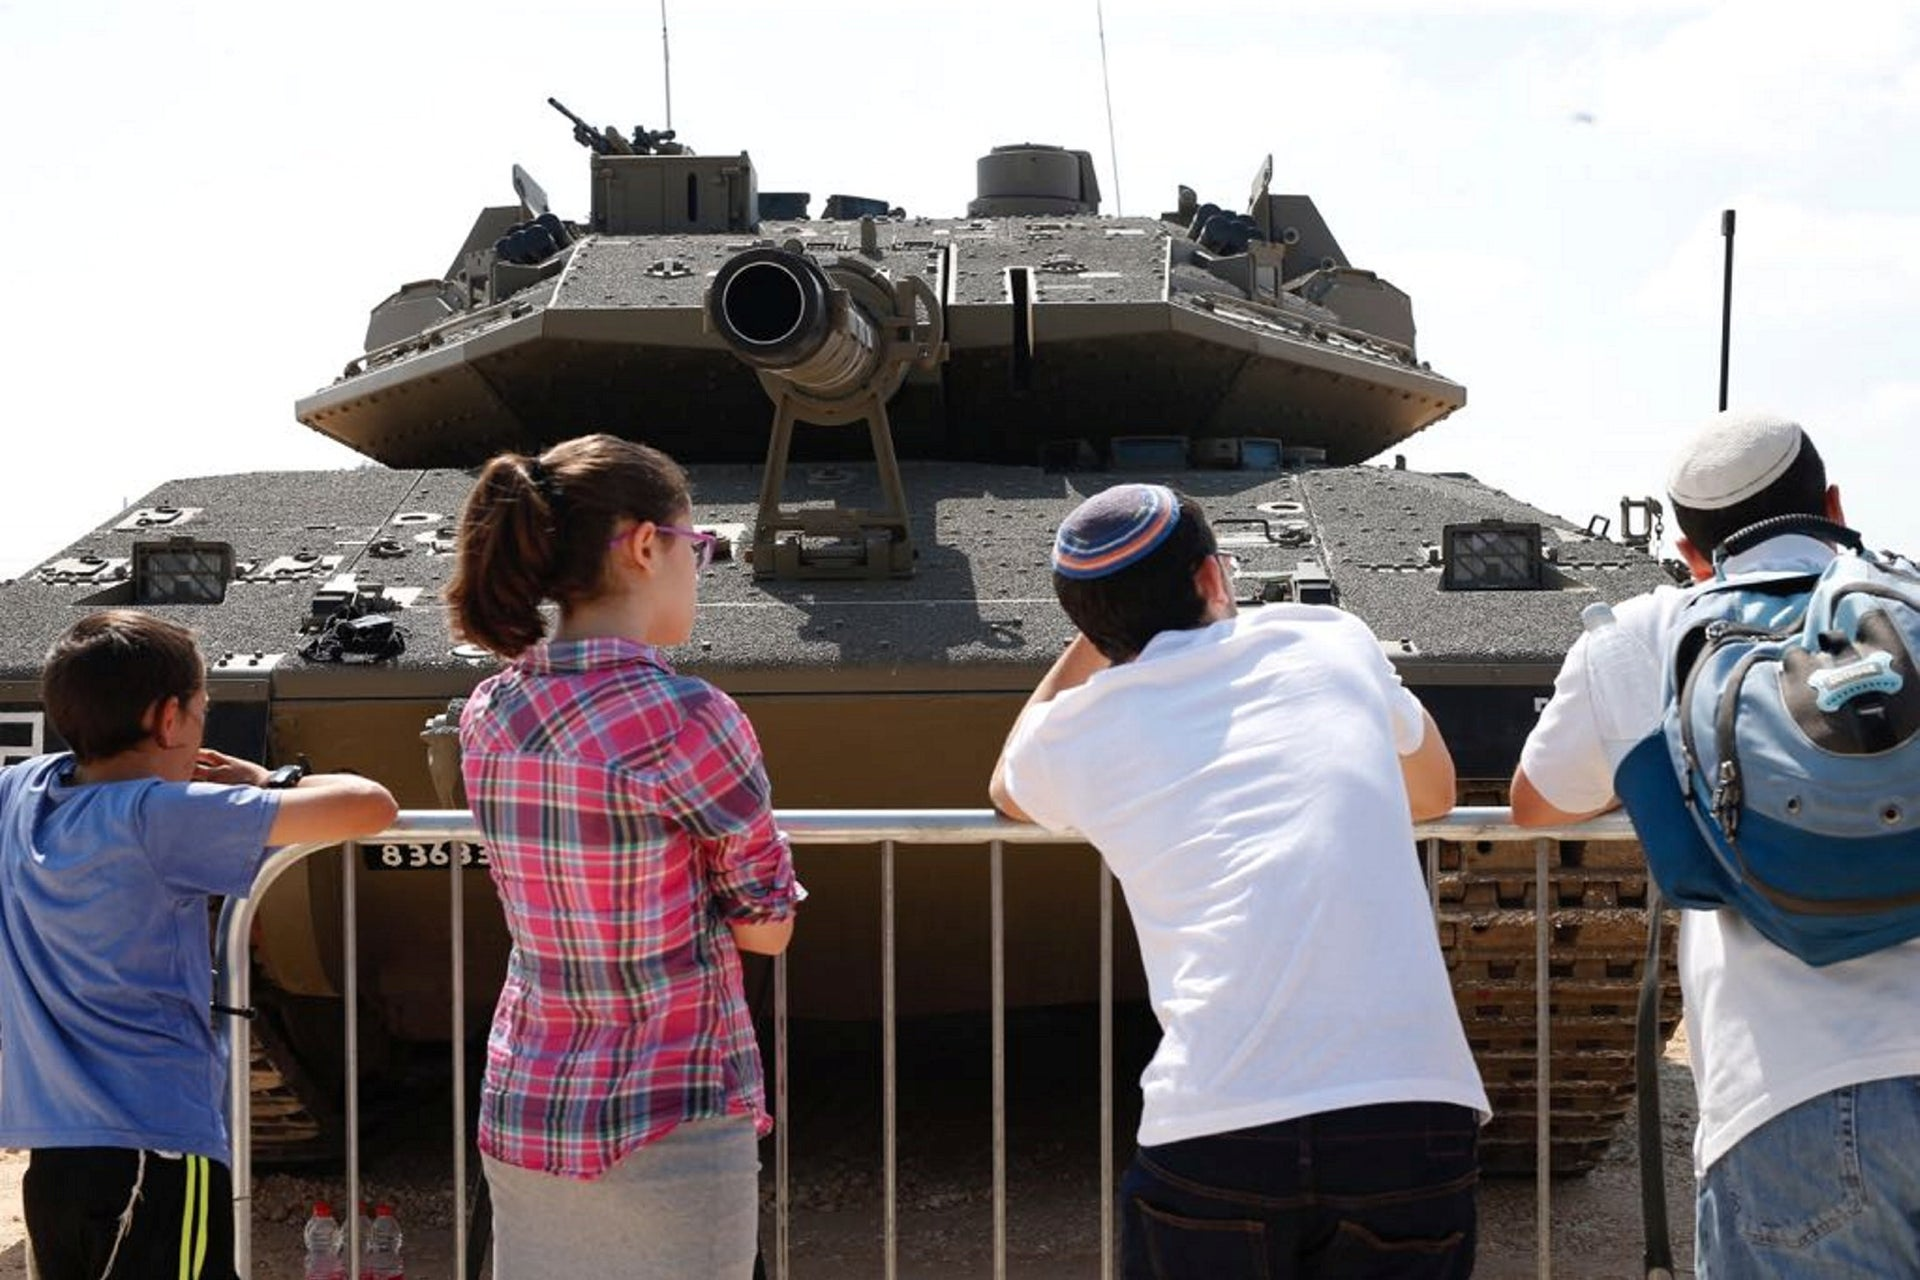 'Our IDF' exhibition in Holon. An army that's proud of its force but prefers not to explain how and where it exerts it